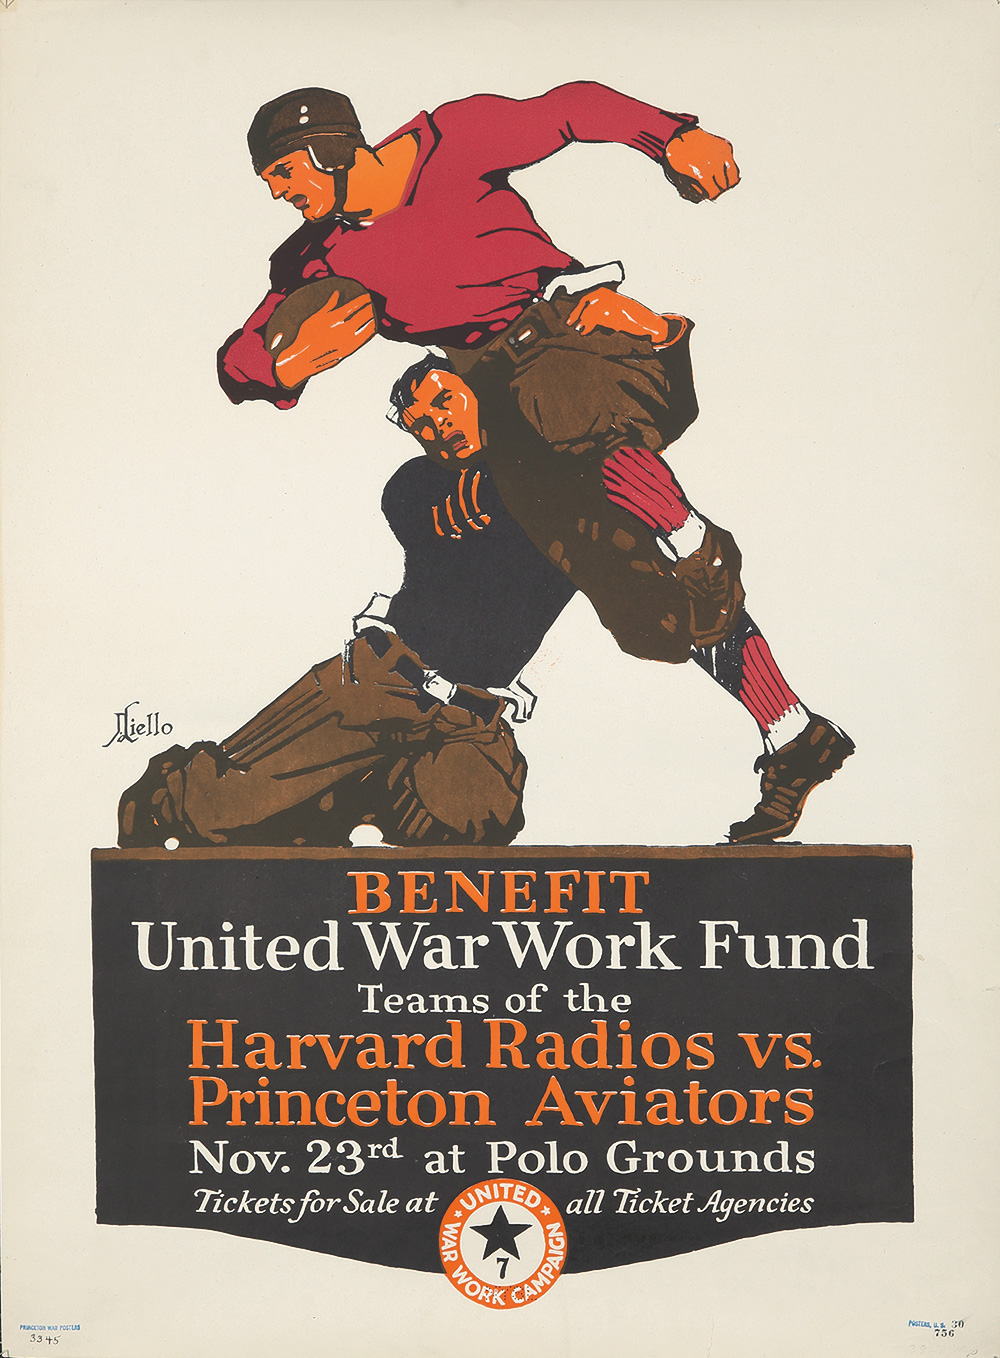 264. United War Work Fund. 1918.